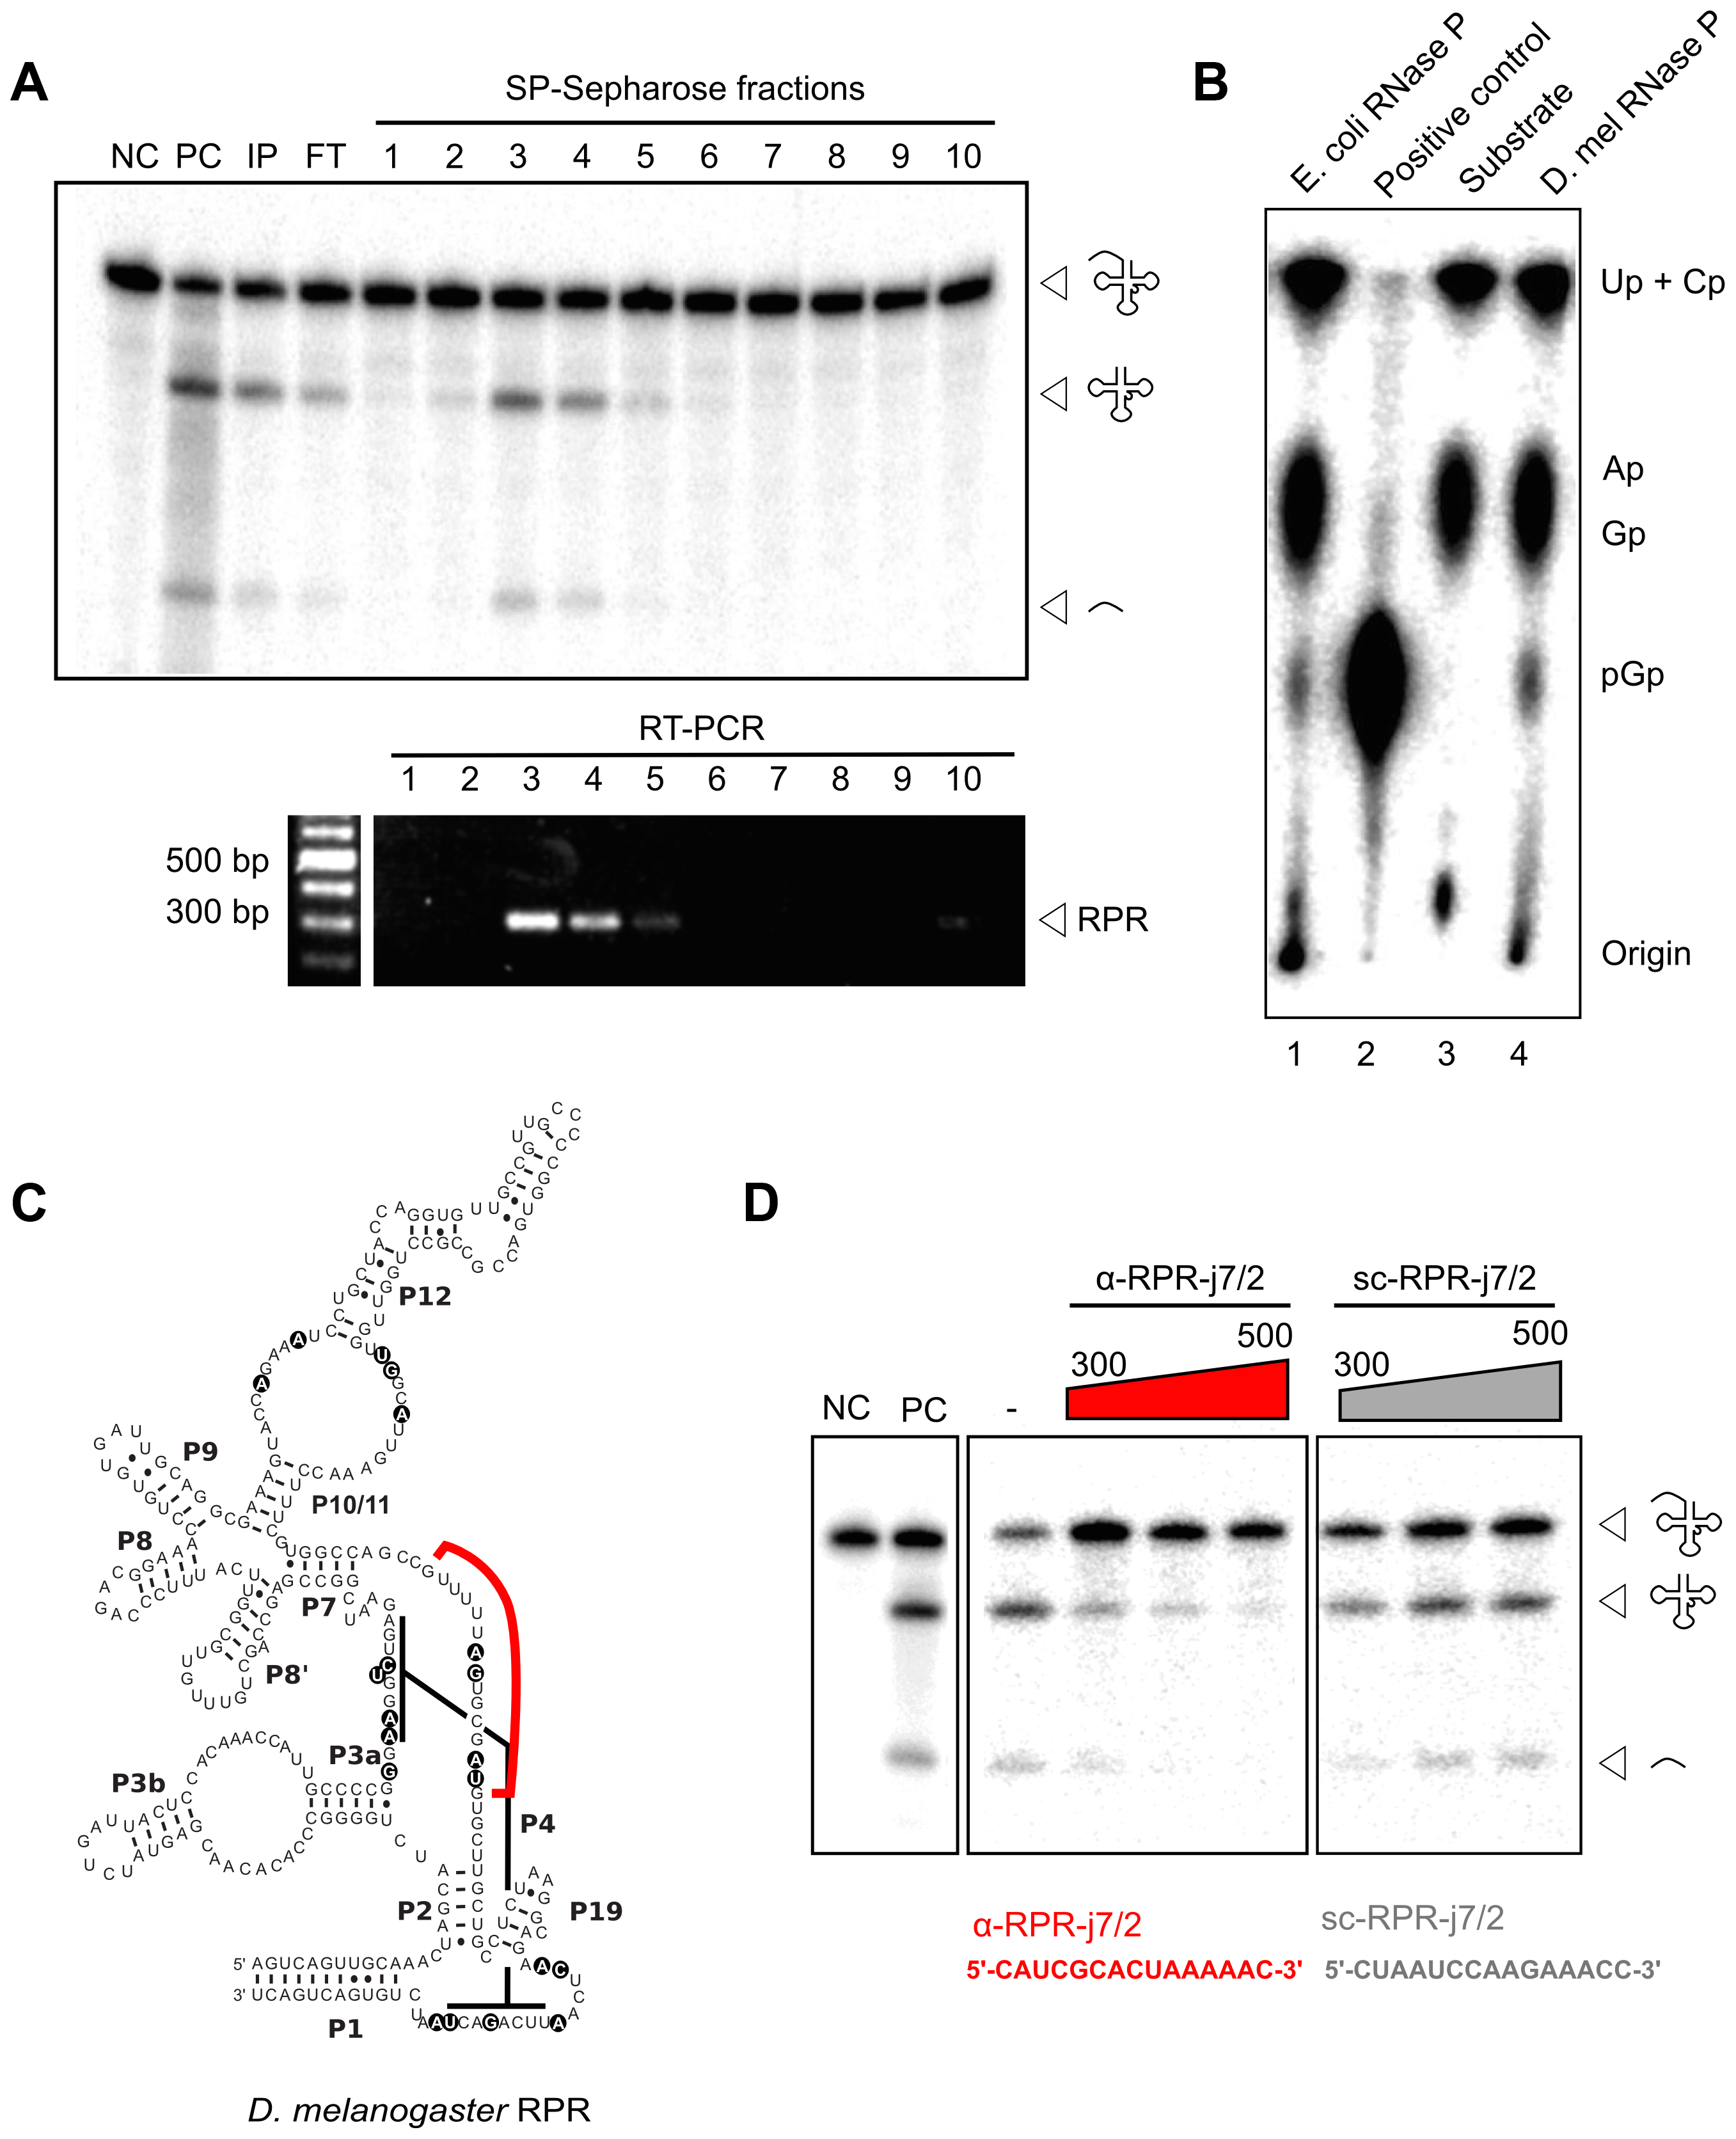 <i>D. melanogaster</i> RPR co-purifies with RNase P and is required for its activity.